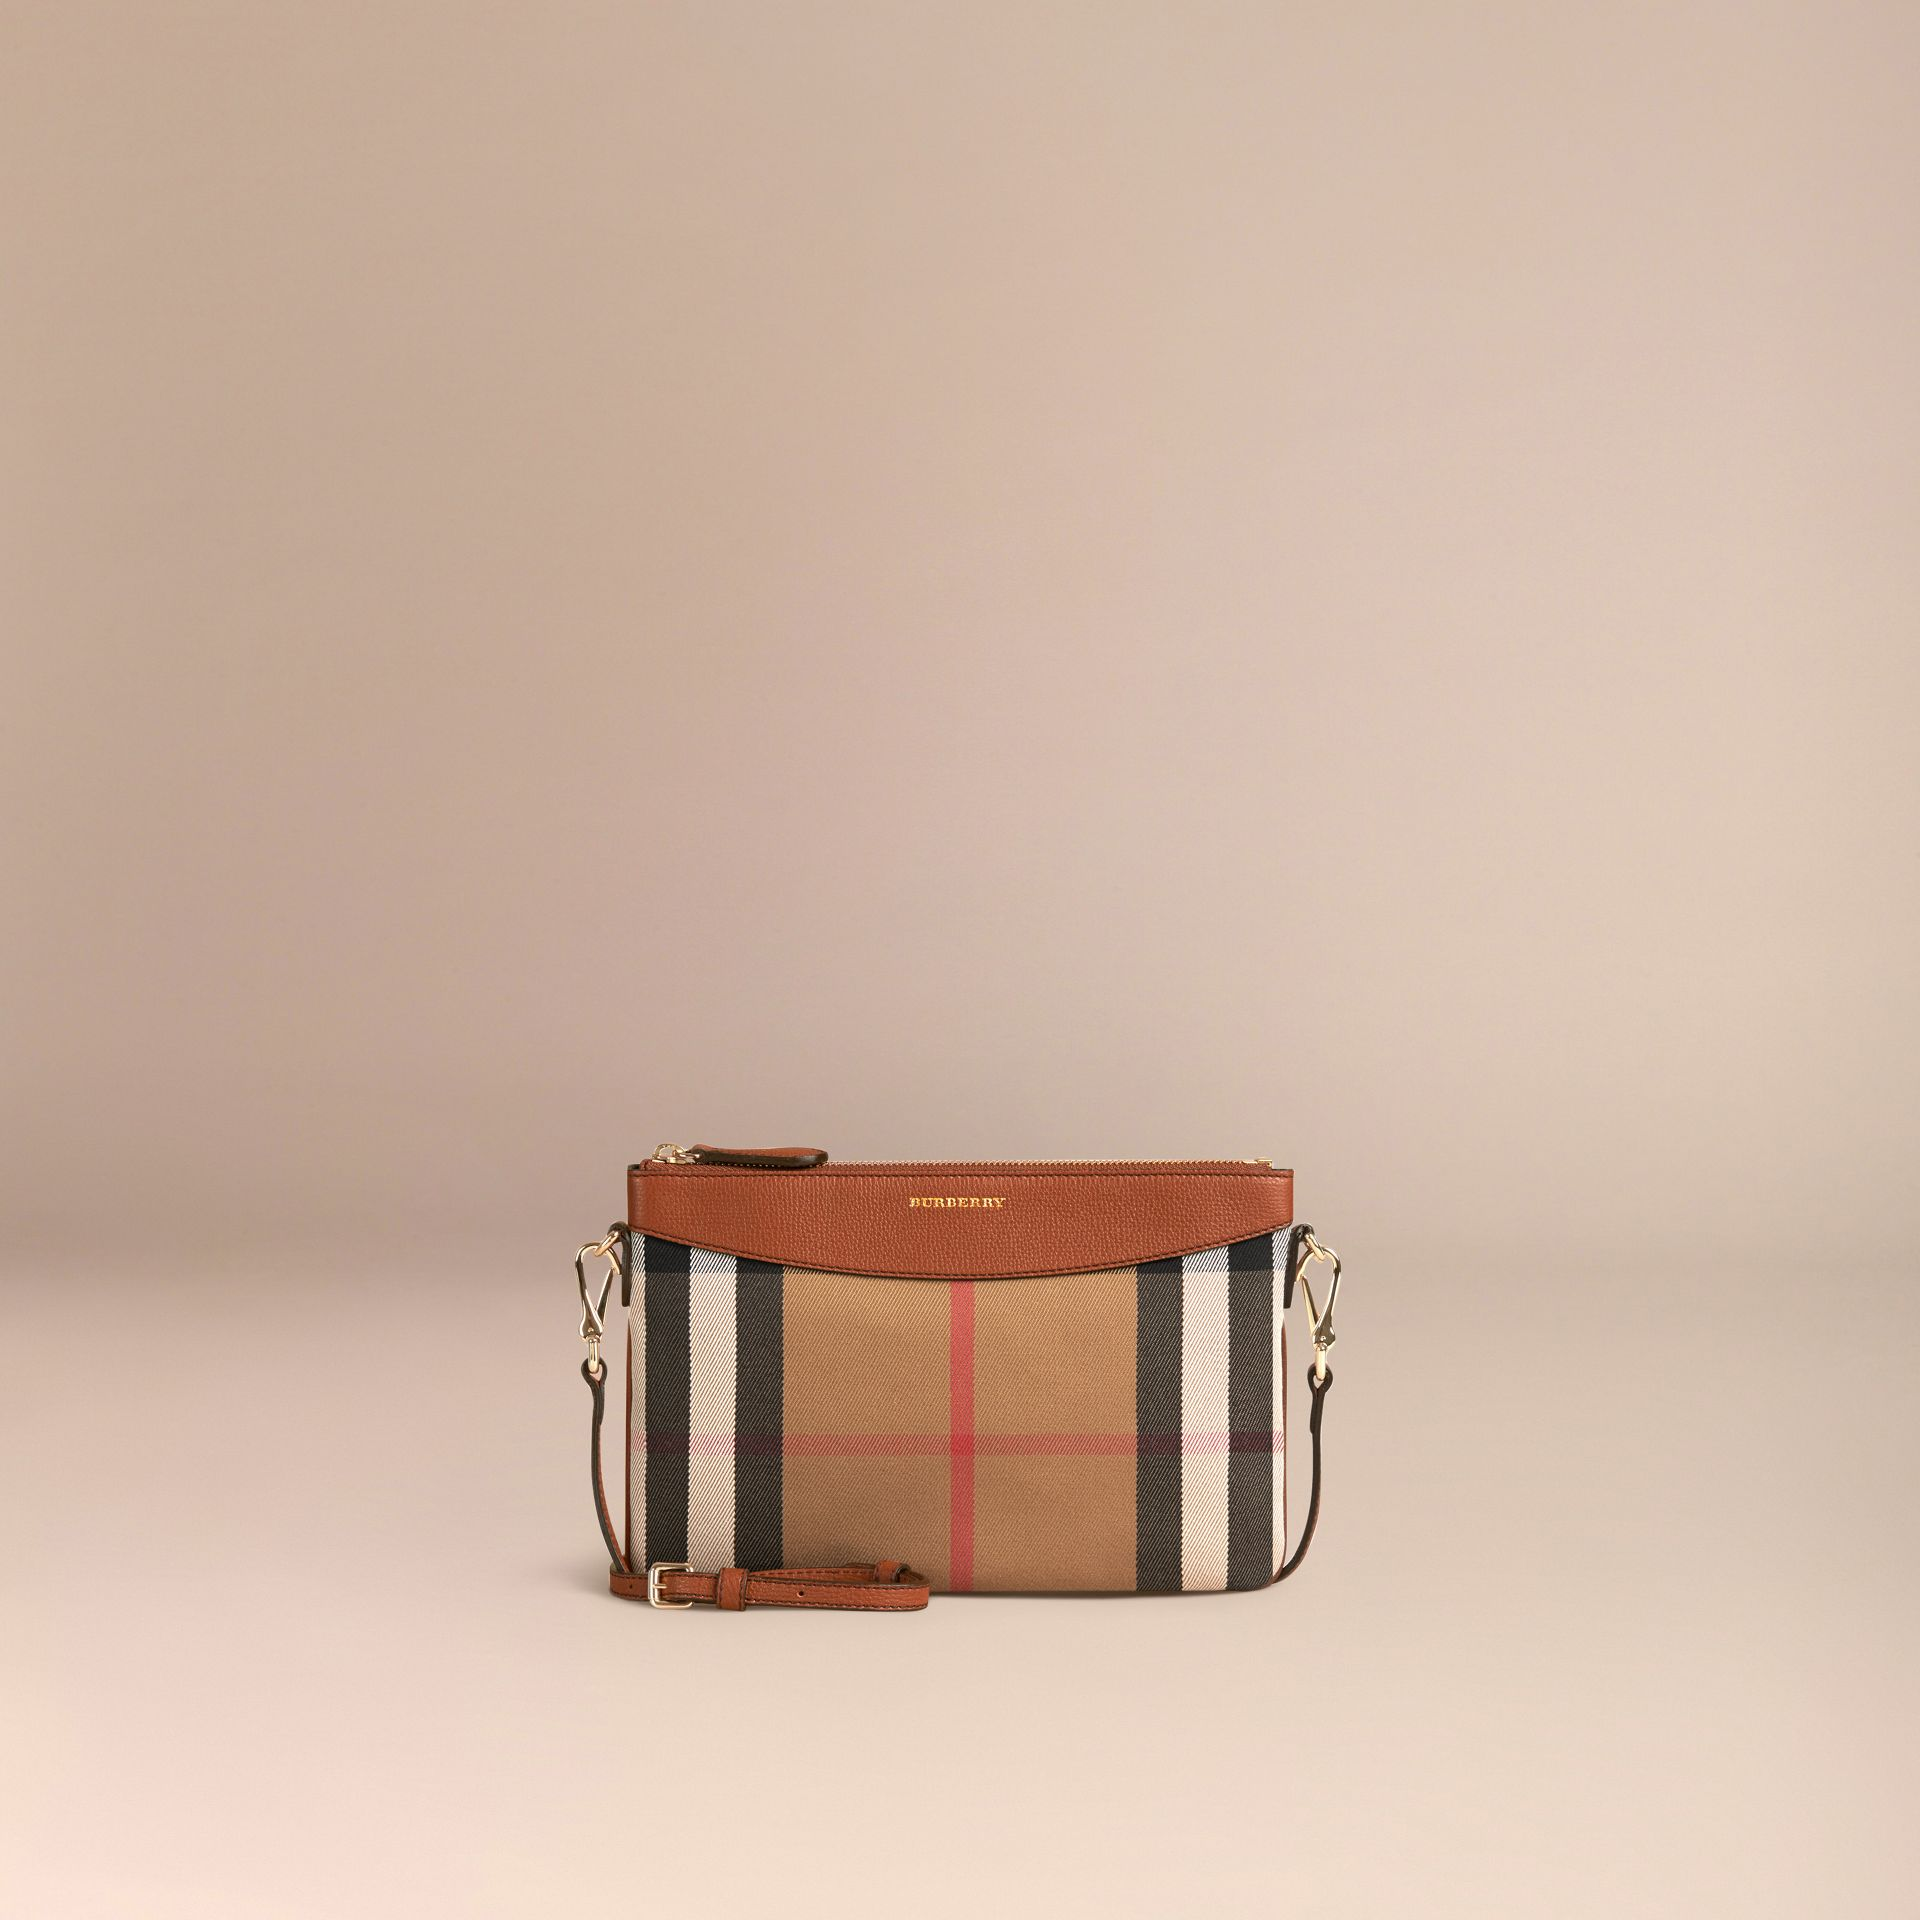 House Check and Leather Clutch Bag in Tan - Women | Burberry - gallery image 7